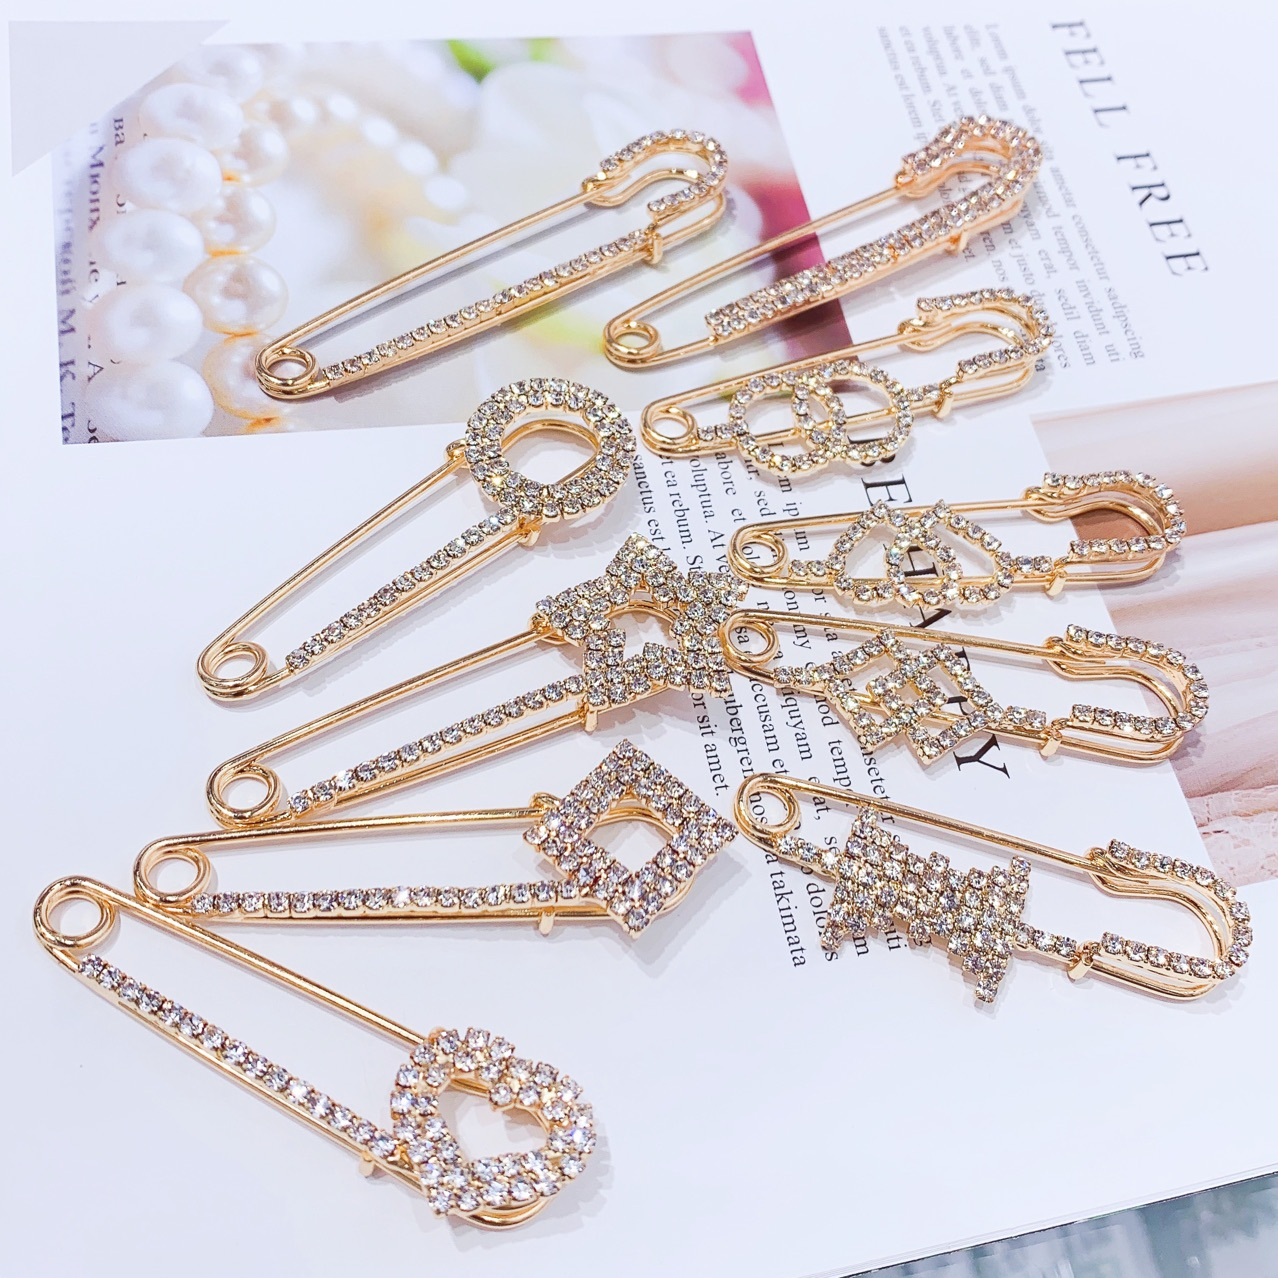 Korea fashion crystal corsage accessories female anti-glare buckle clothes cardigan pin rhinestone brooch wholesale